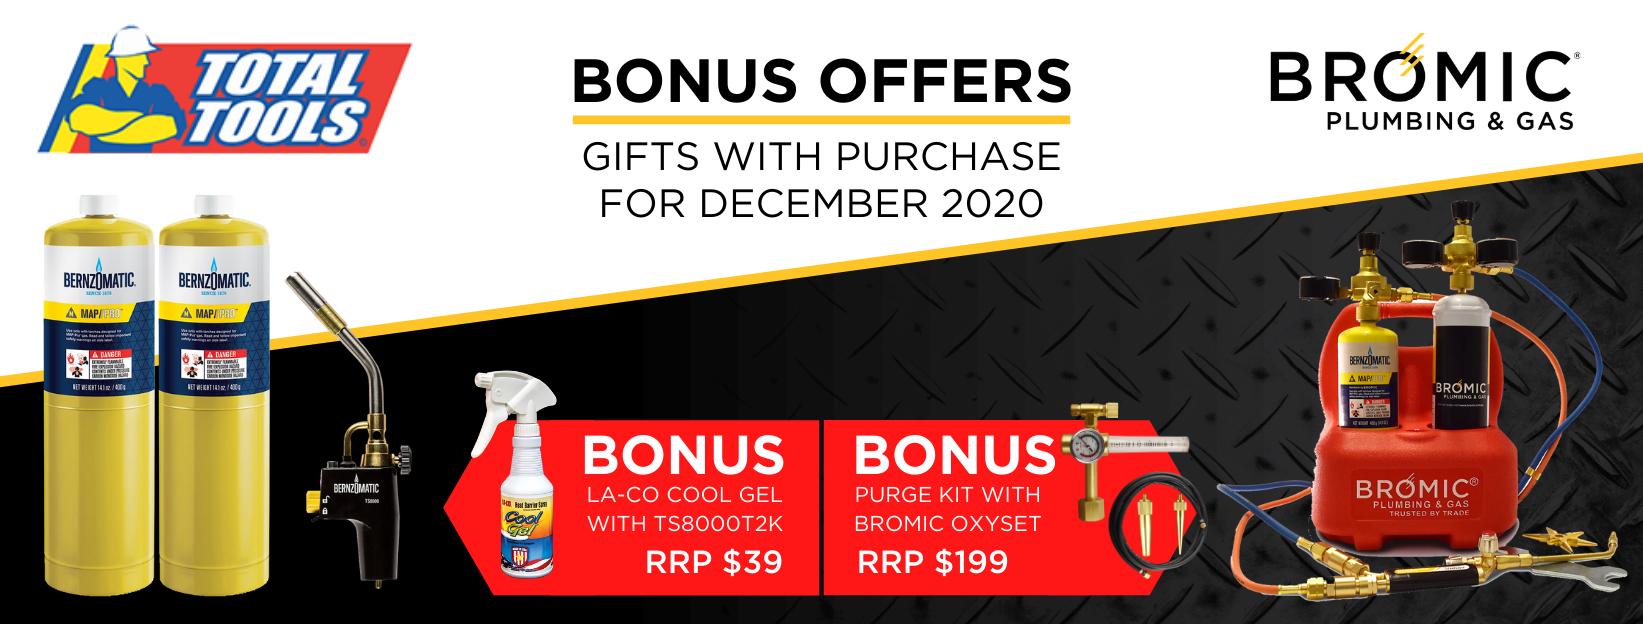 Total Tools Bromic Gift With Purchase Promotions Dec